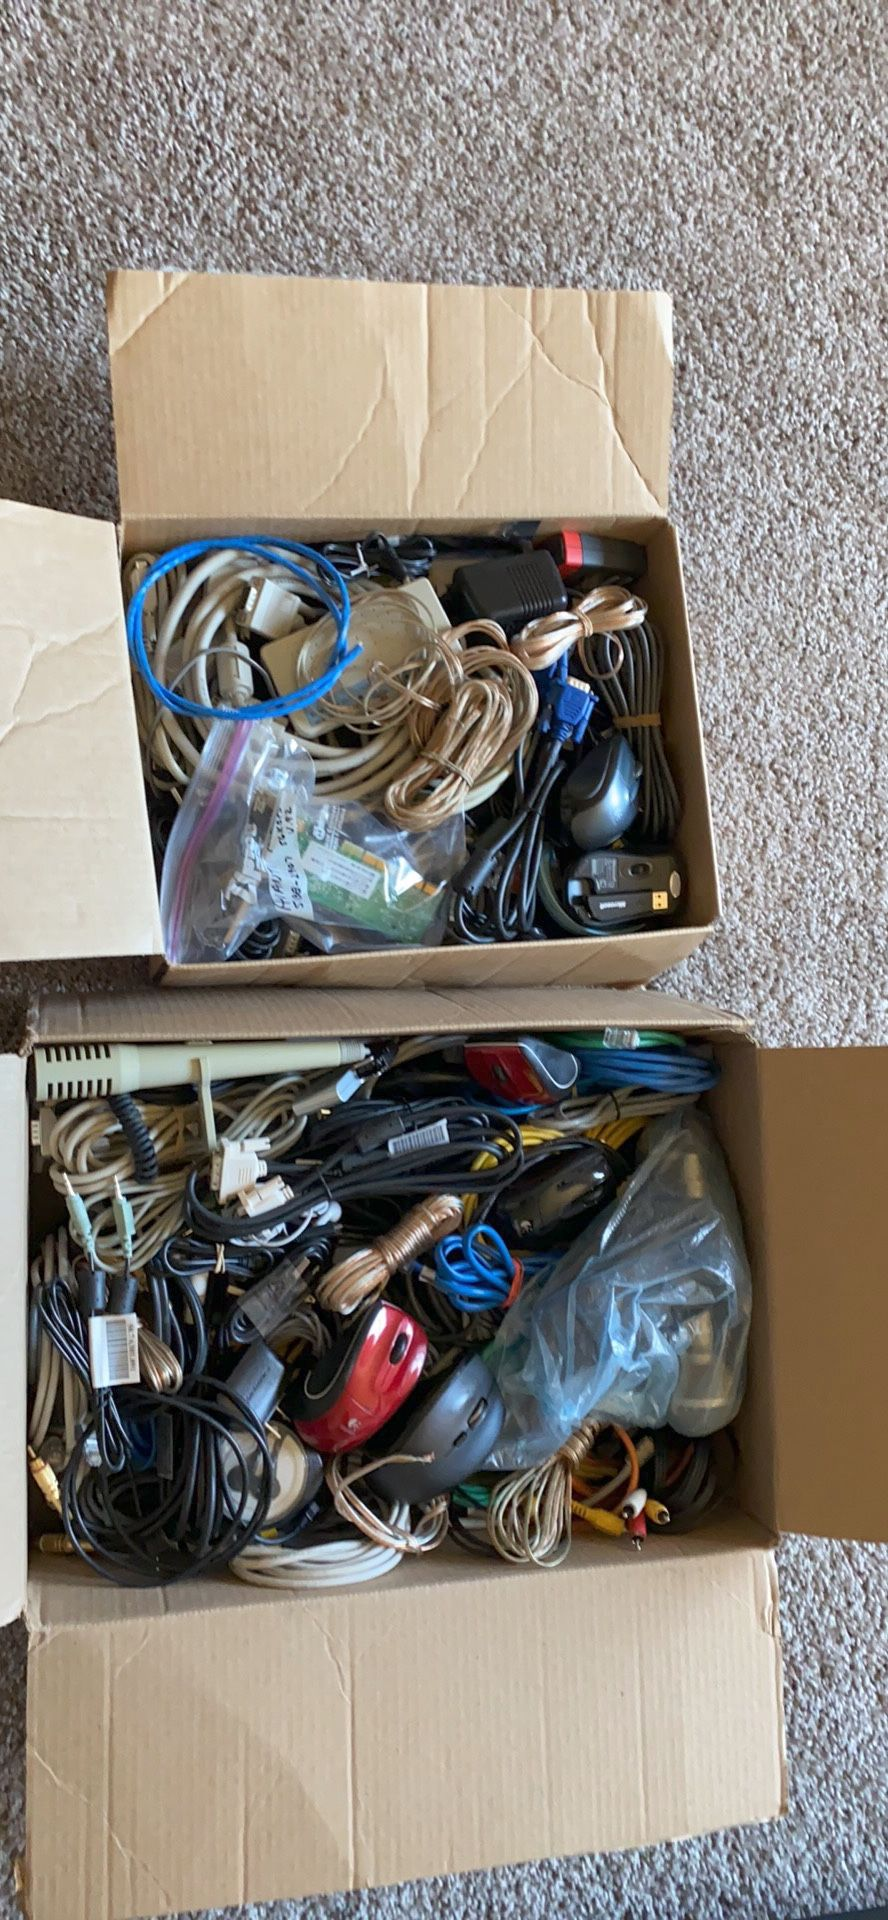 Miscellaneous Computer and Networking Stuff